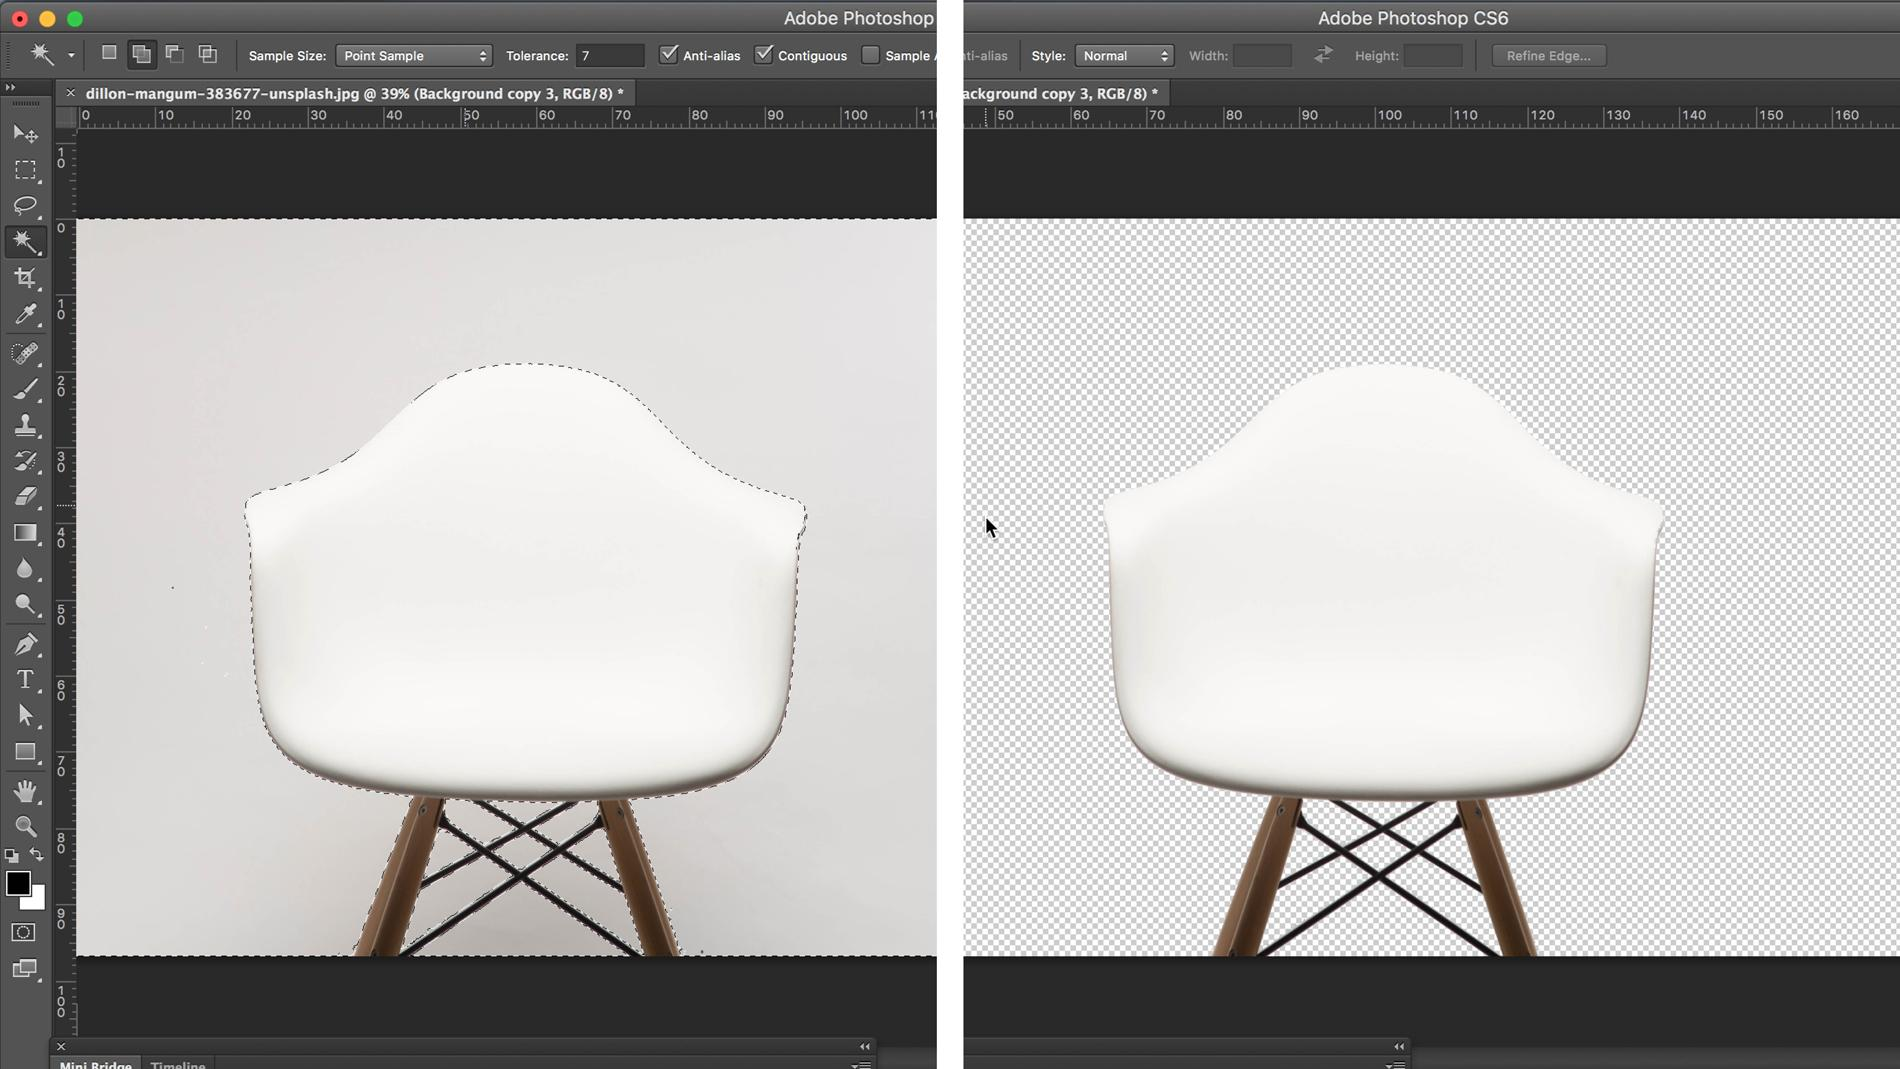 Screenshot of a chair with background removed in Photoshop